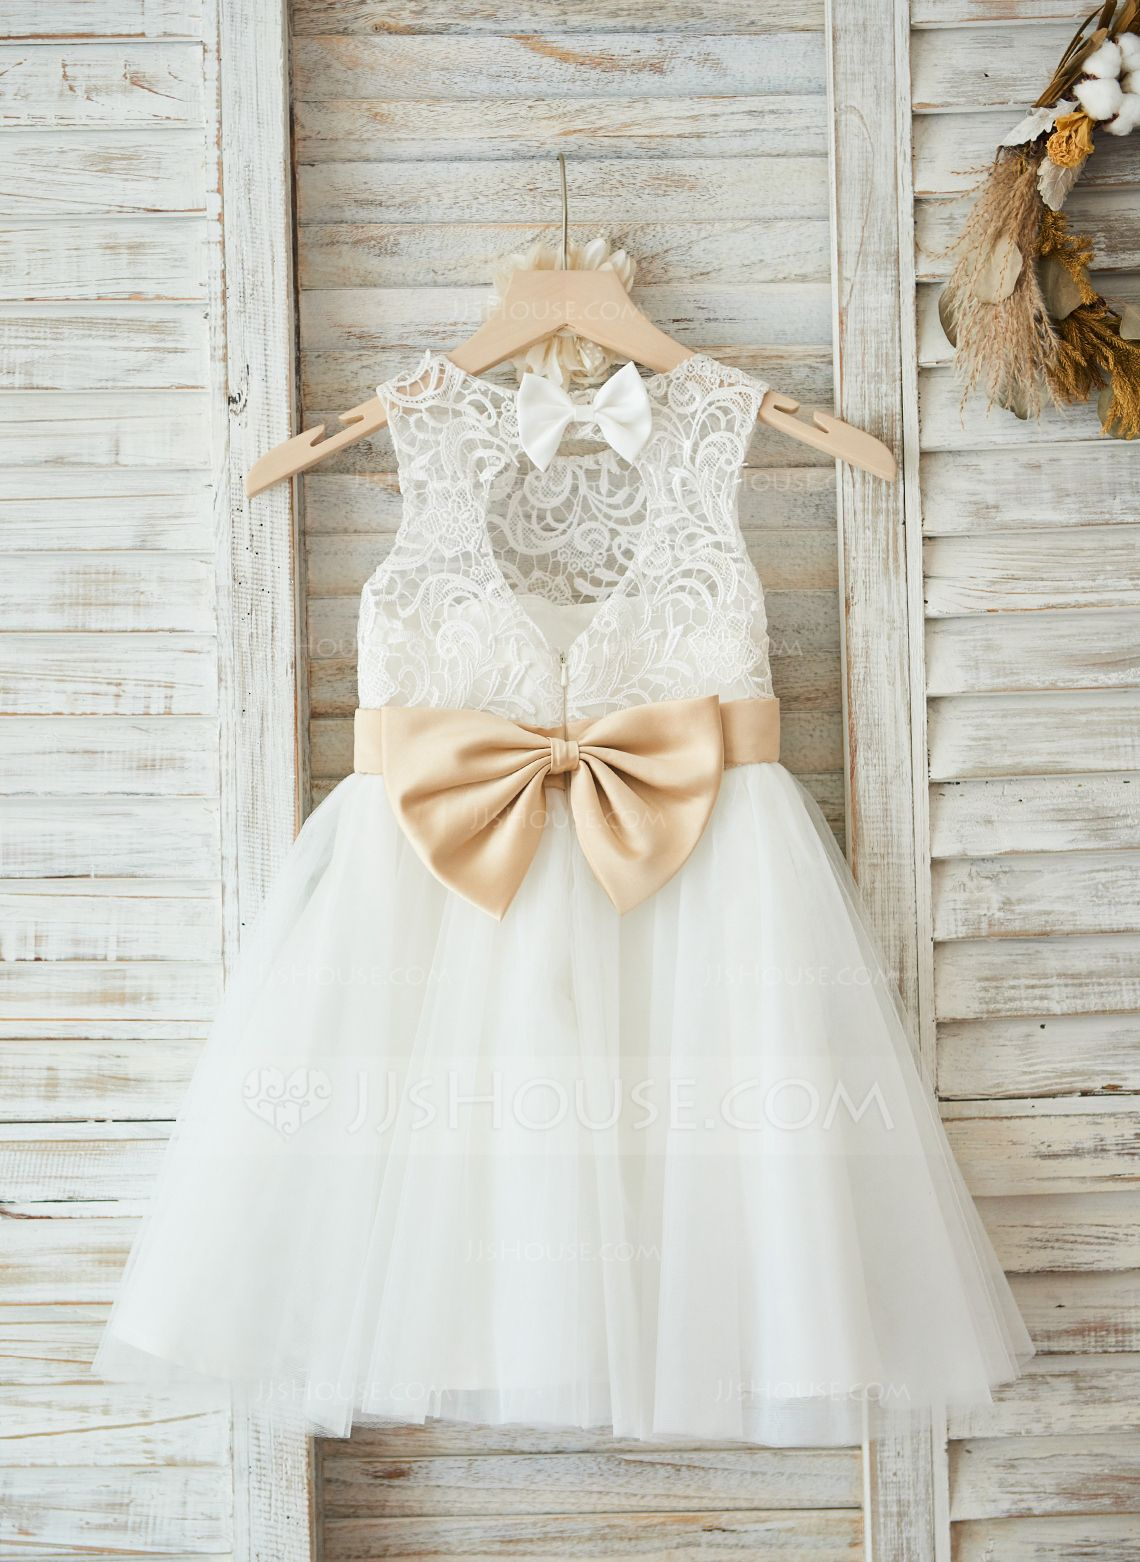 3c4857cf3 A-Line/Princess Knee-length Flower Girl Dress - Satin/Tulle/Lace Sleeveless  Scoop Neck With Sash/Bow(s)/Back Hole (010090576) - Flower Girl Dresses -  ...